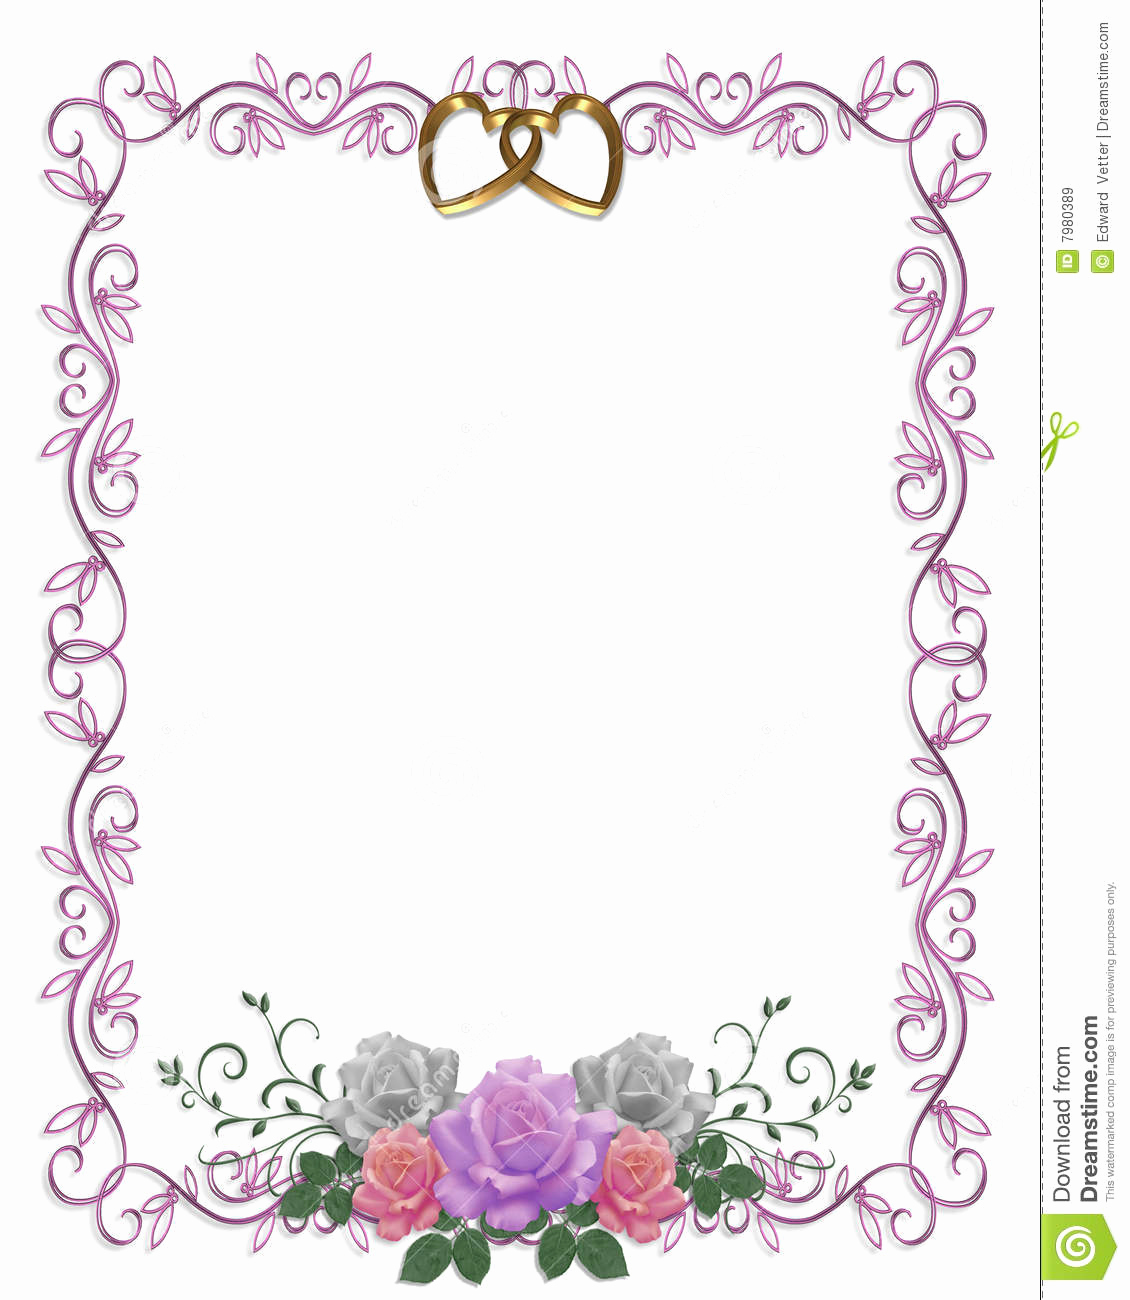 Wedding Invitation Borders Design Best Of Wedding Invitation Floral Border Roses Stock Illustration